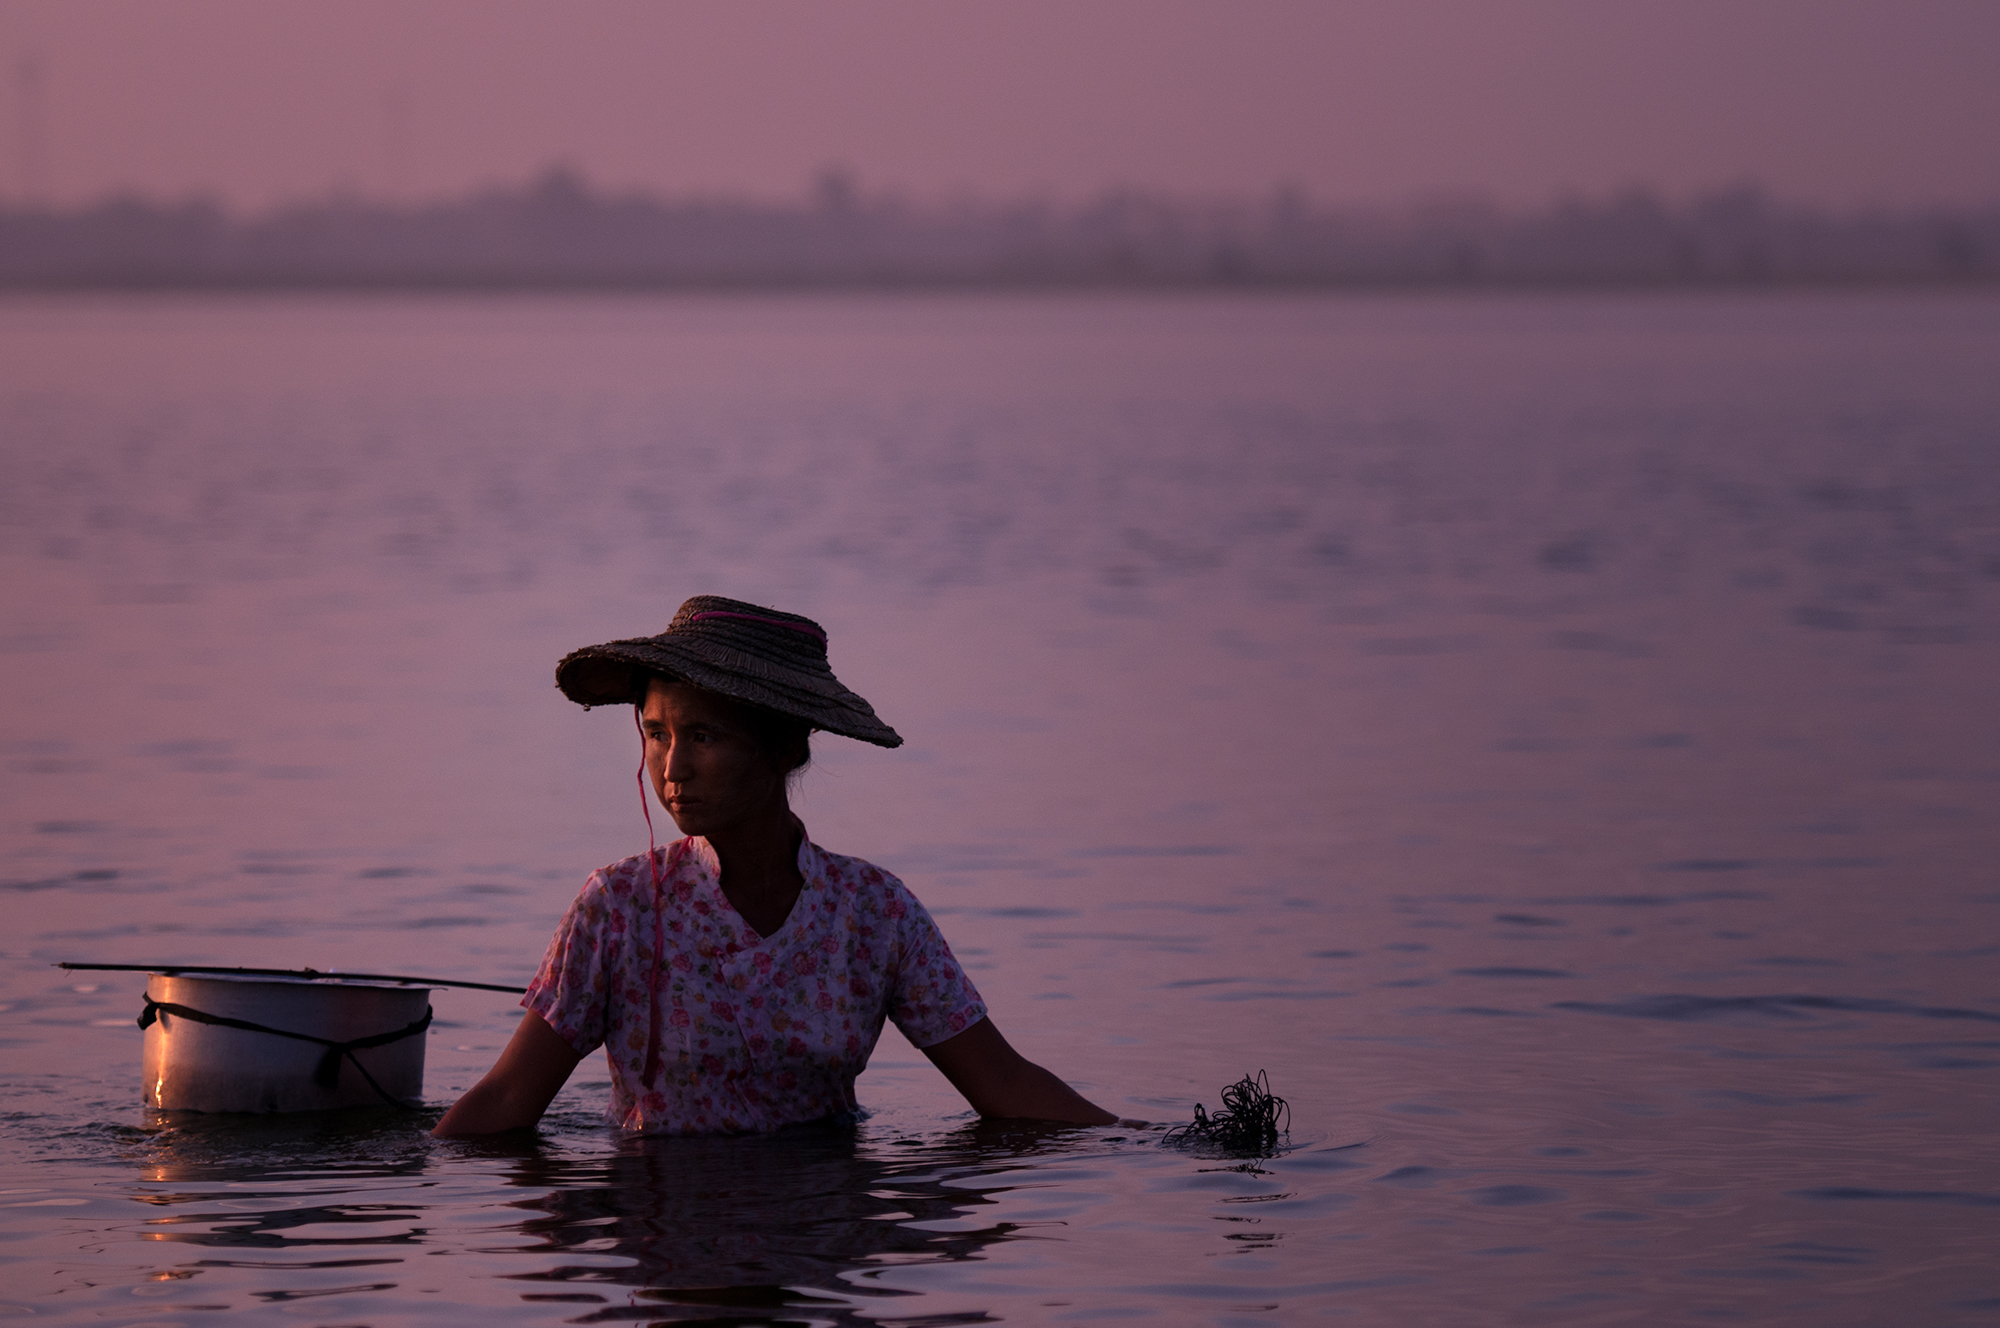 A woman  fishes with a net in the shallow waters of Taungthaman Lake.